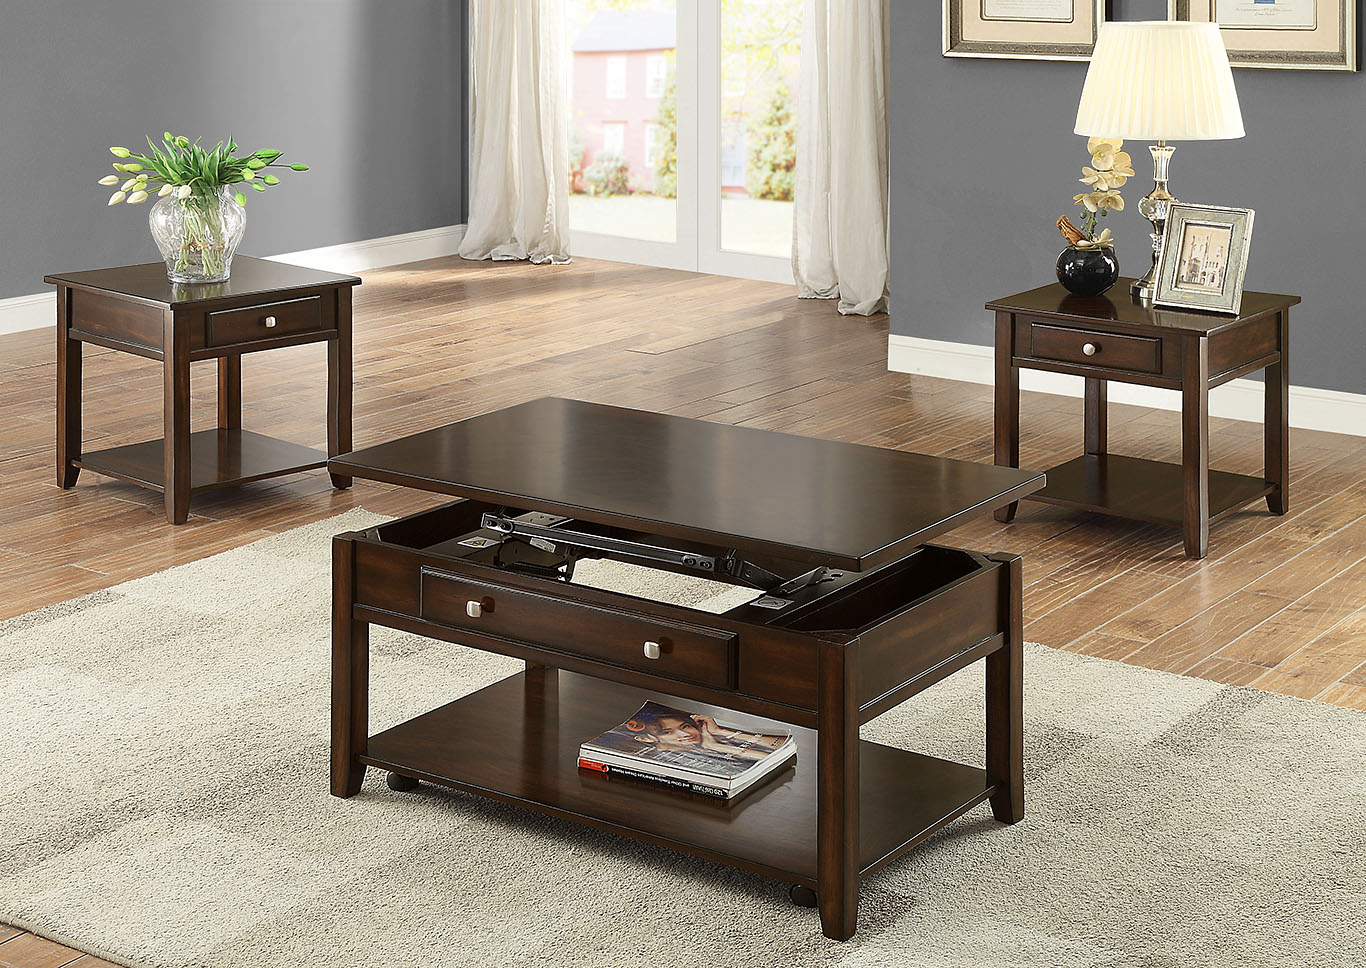 Julian Brown Lift Top Coffee Table W/Caster,Crown Mark